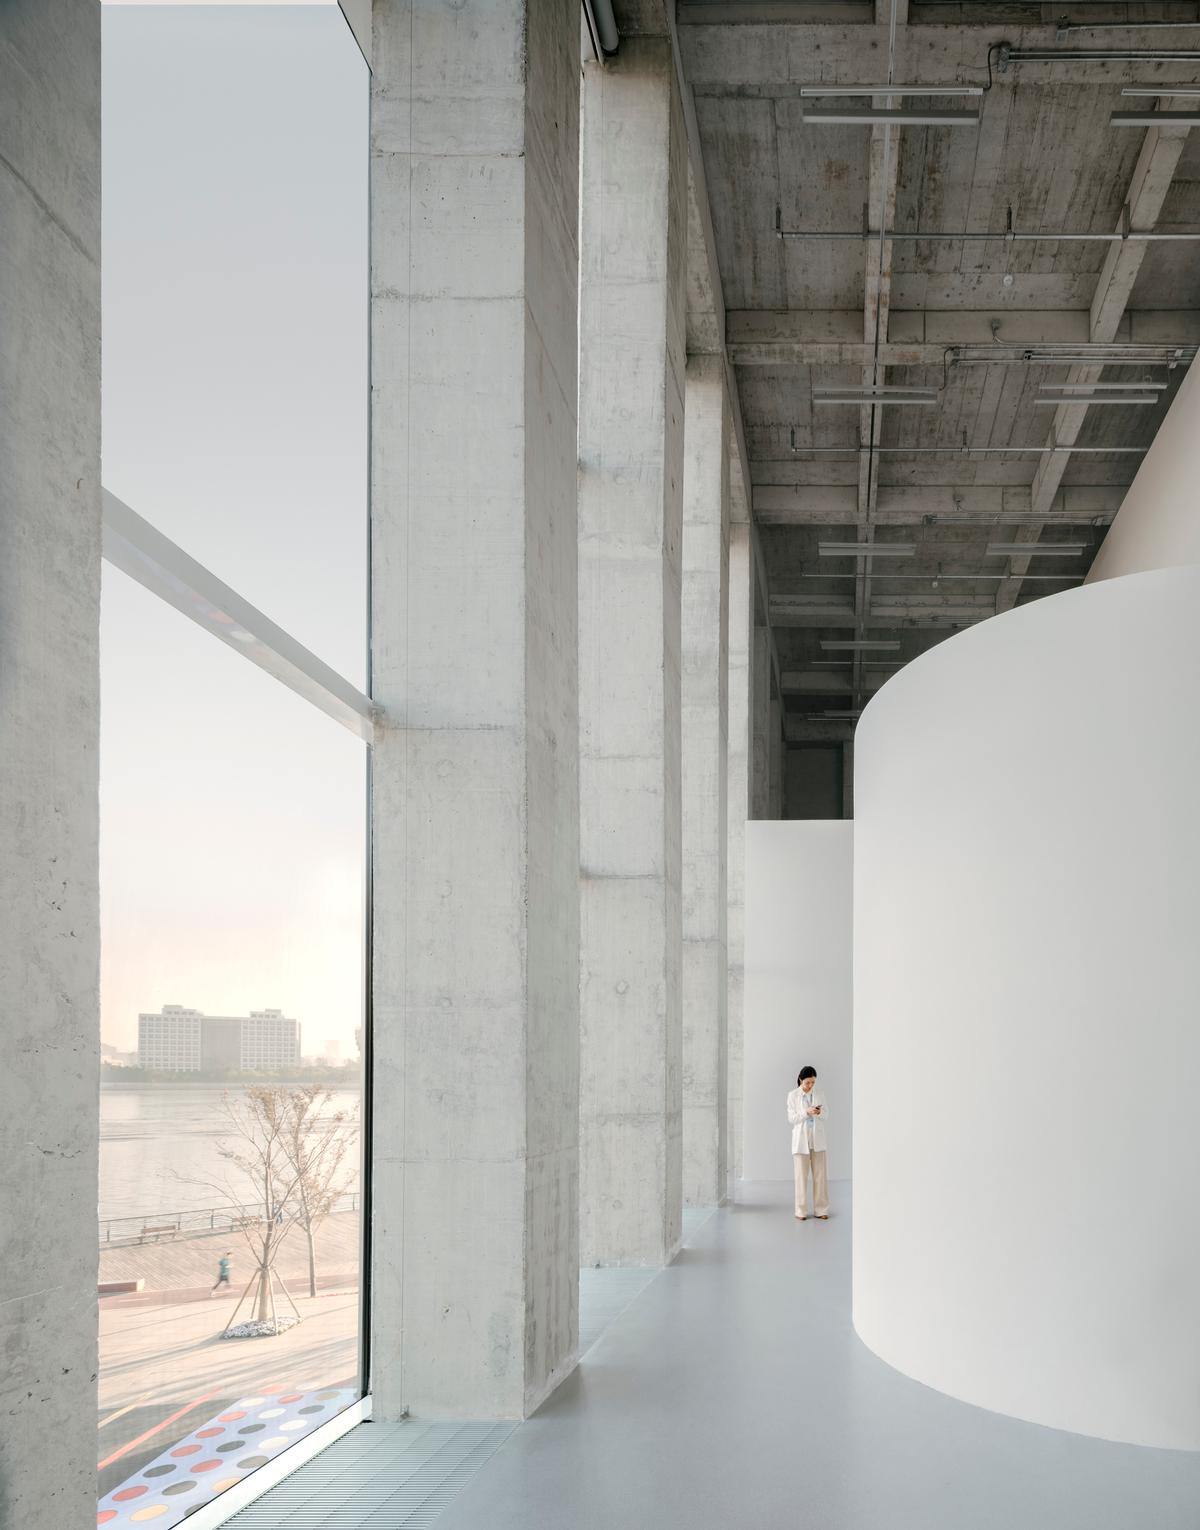 The building is designed to respond to the openness of its site / Simon Menges